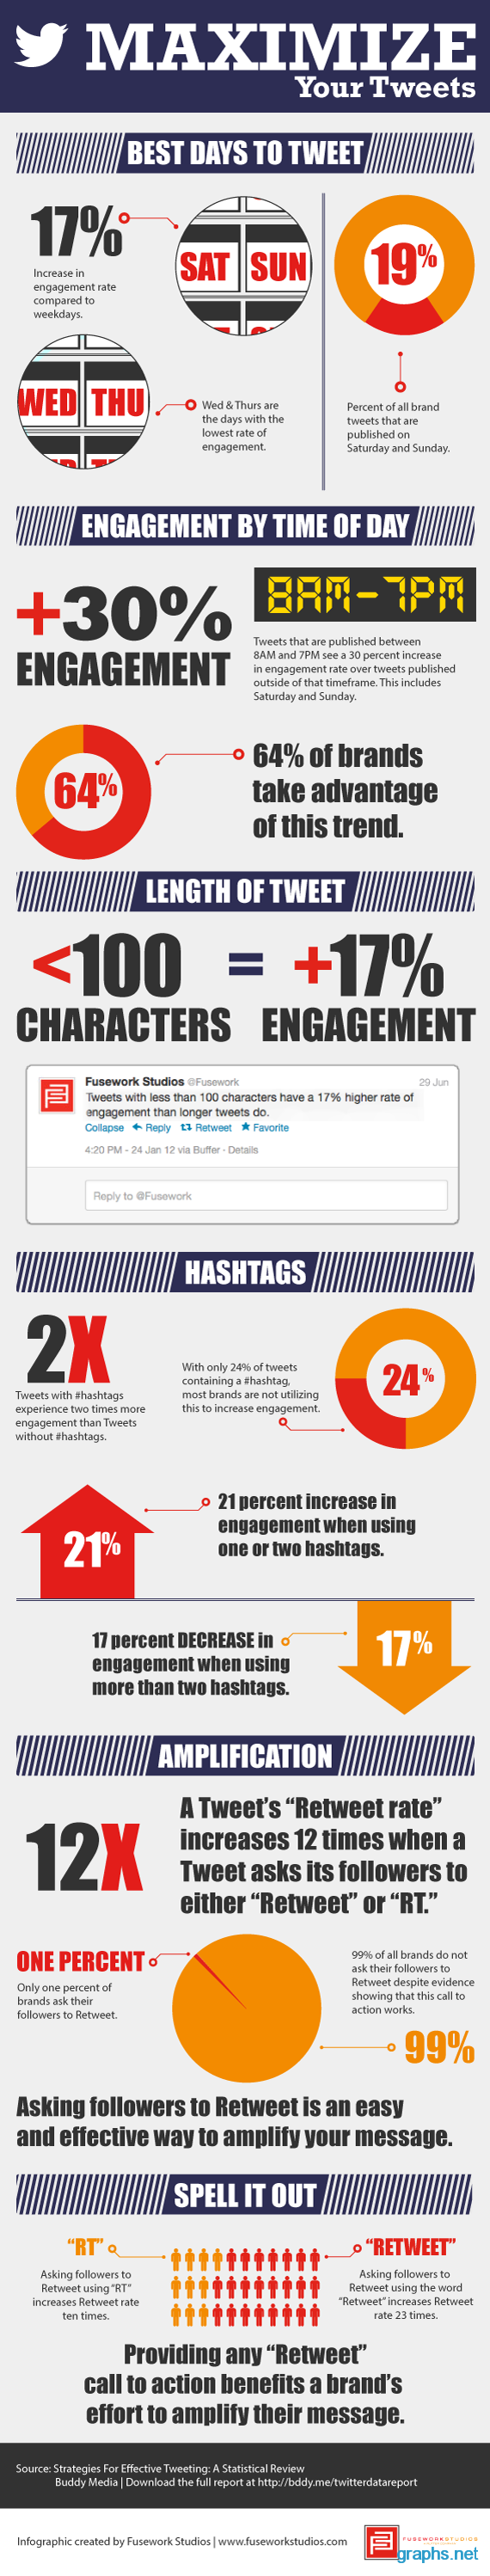 Tips to Maximize Your Tweets